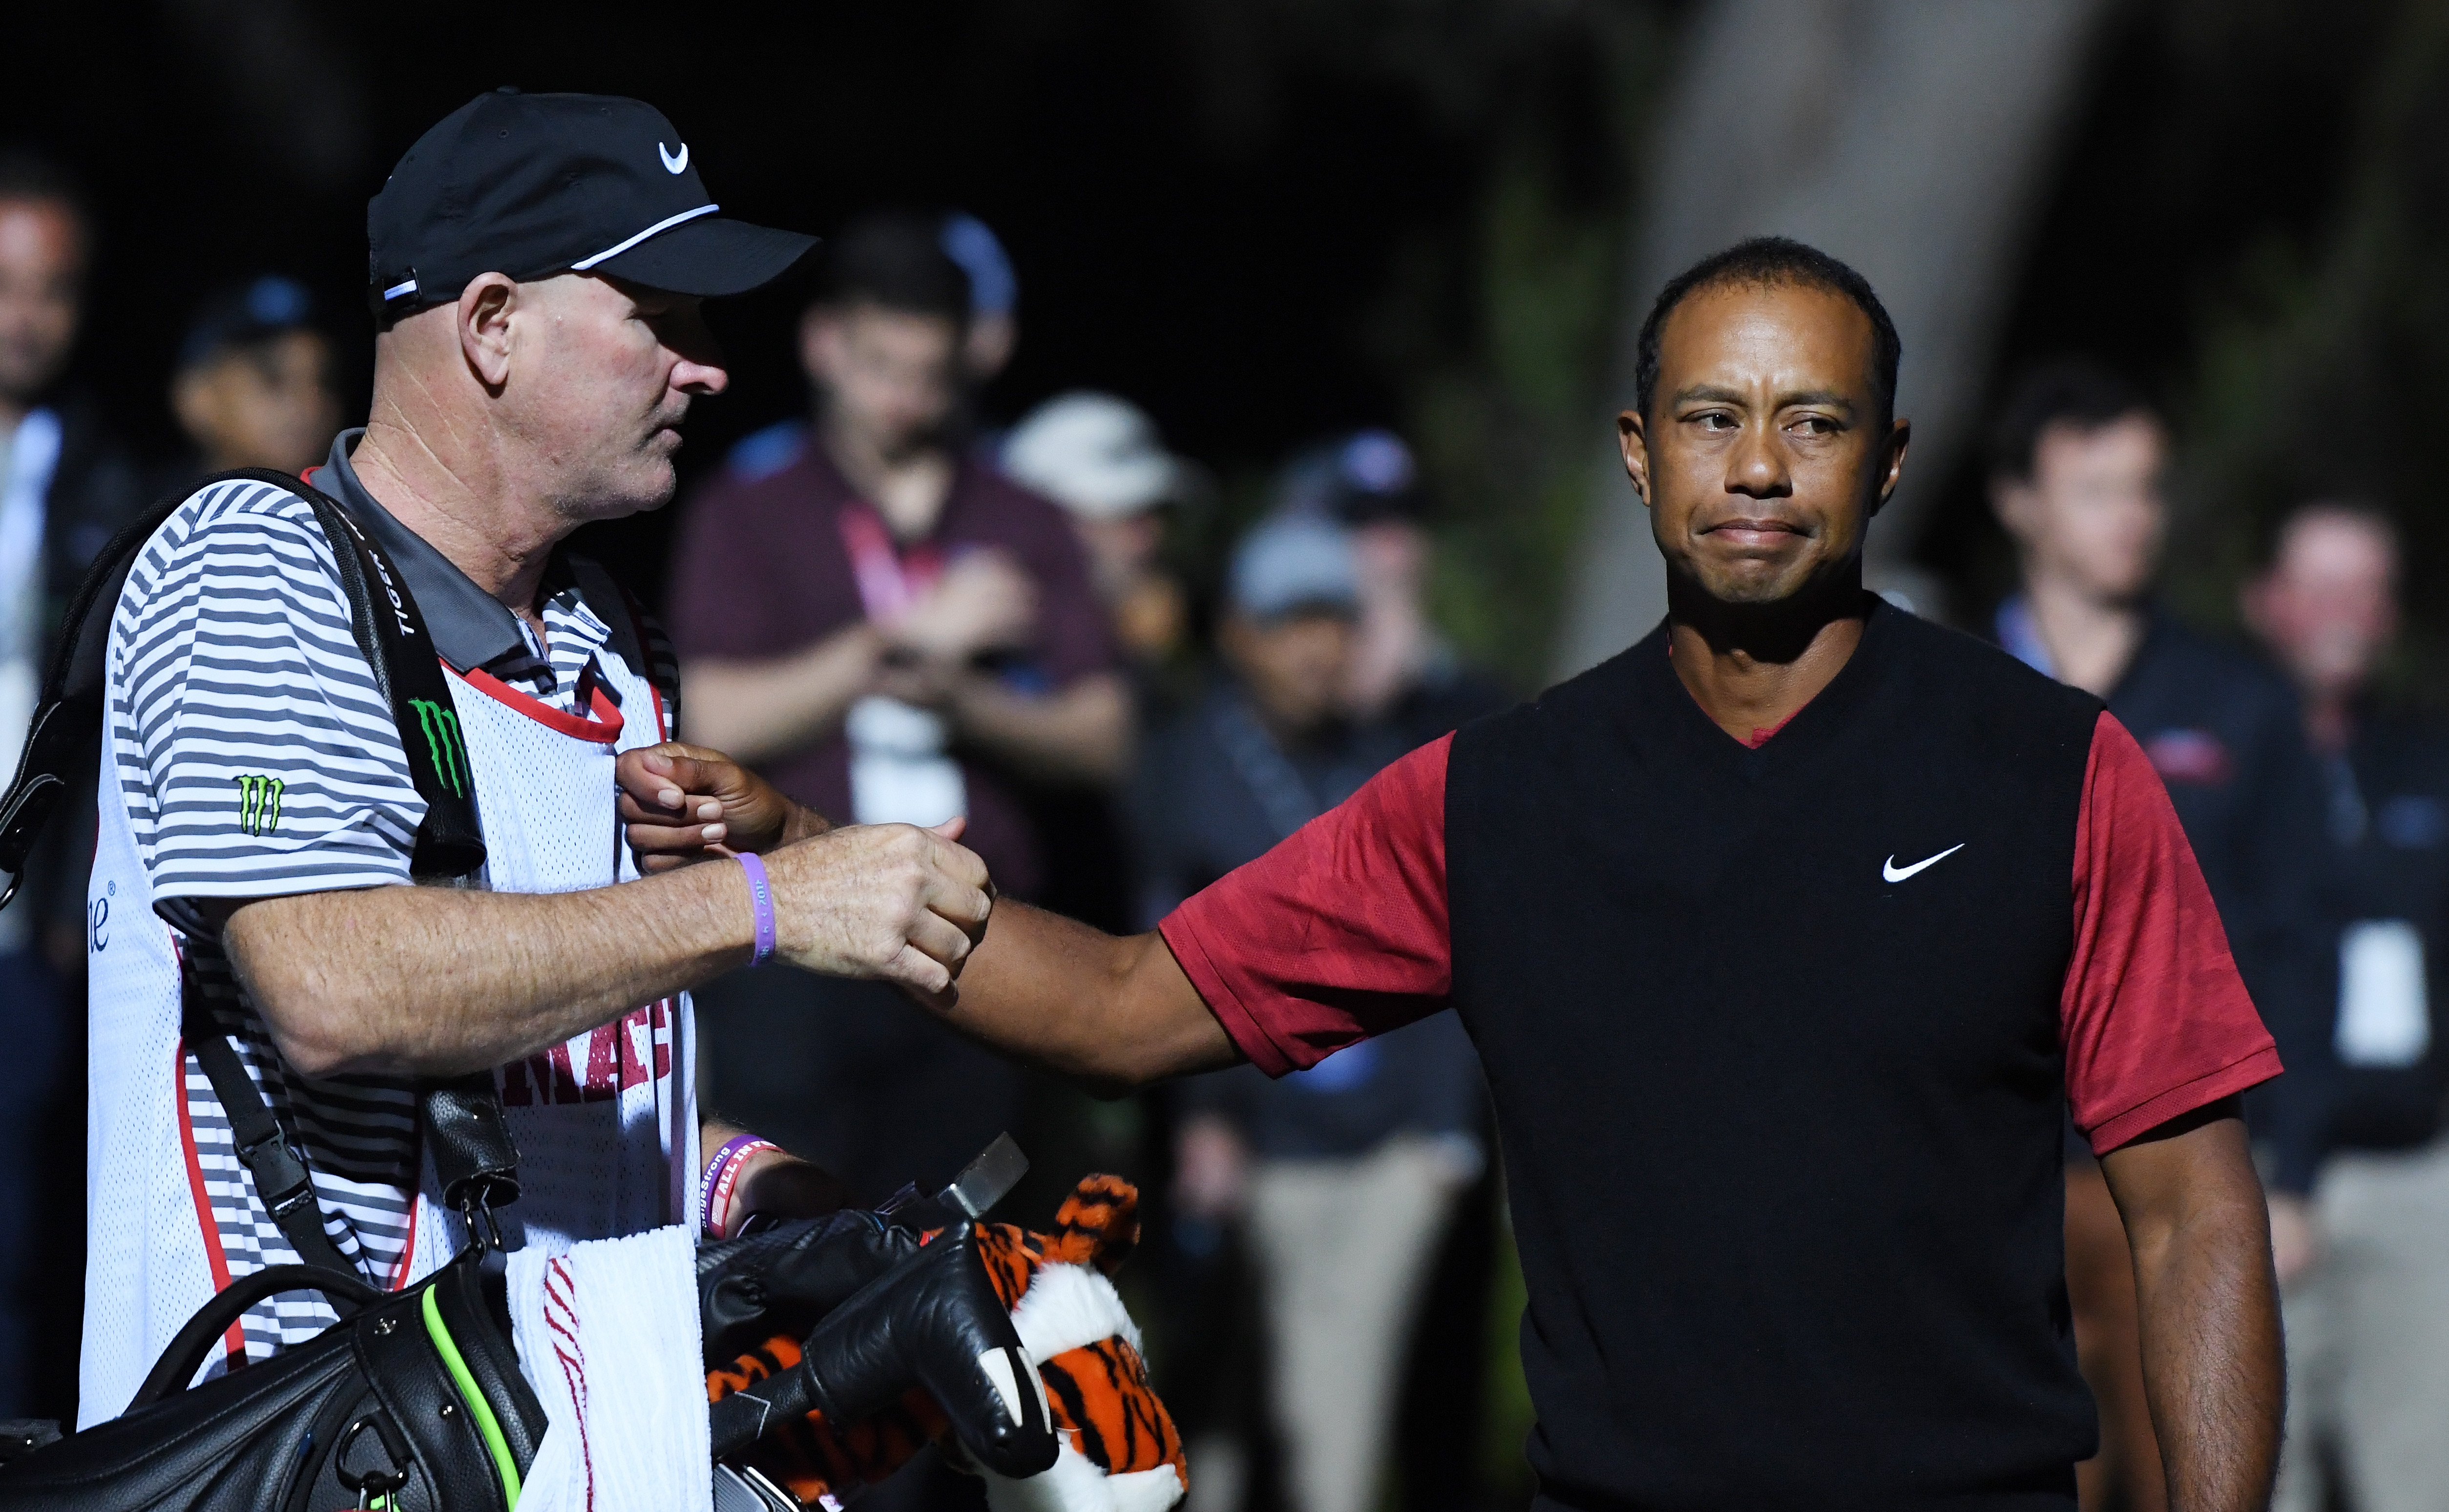 LAS VEGAS, NV - NOVEMBER 23: Tiger Woods and caddie Joe LaCava react after Woods lost to Phil Mickelson during The Match: Tiger vs Phil at Shadow Creek Golf Course on November 23, 2018 in Las Vegas, Nevada. (Photo by Harry How/Getty Images for The Match)